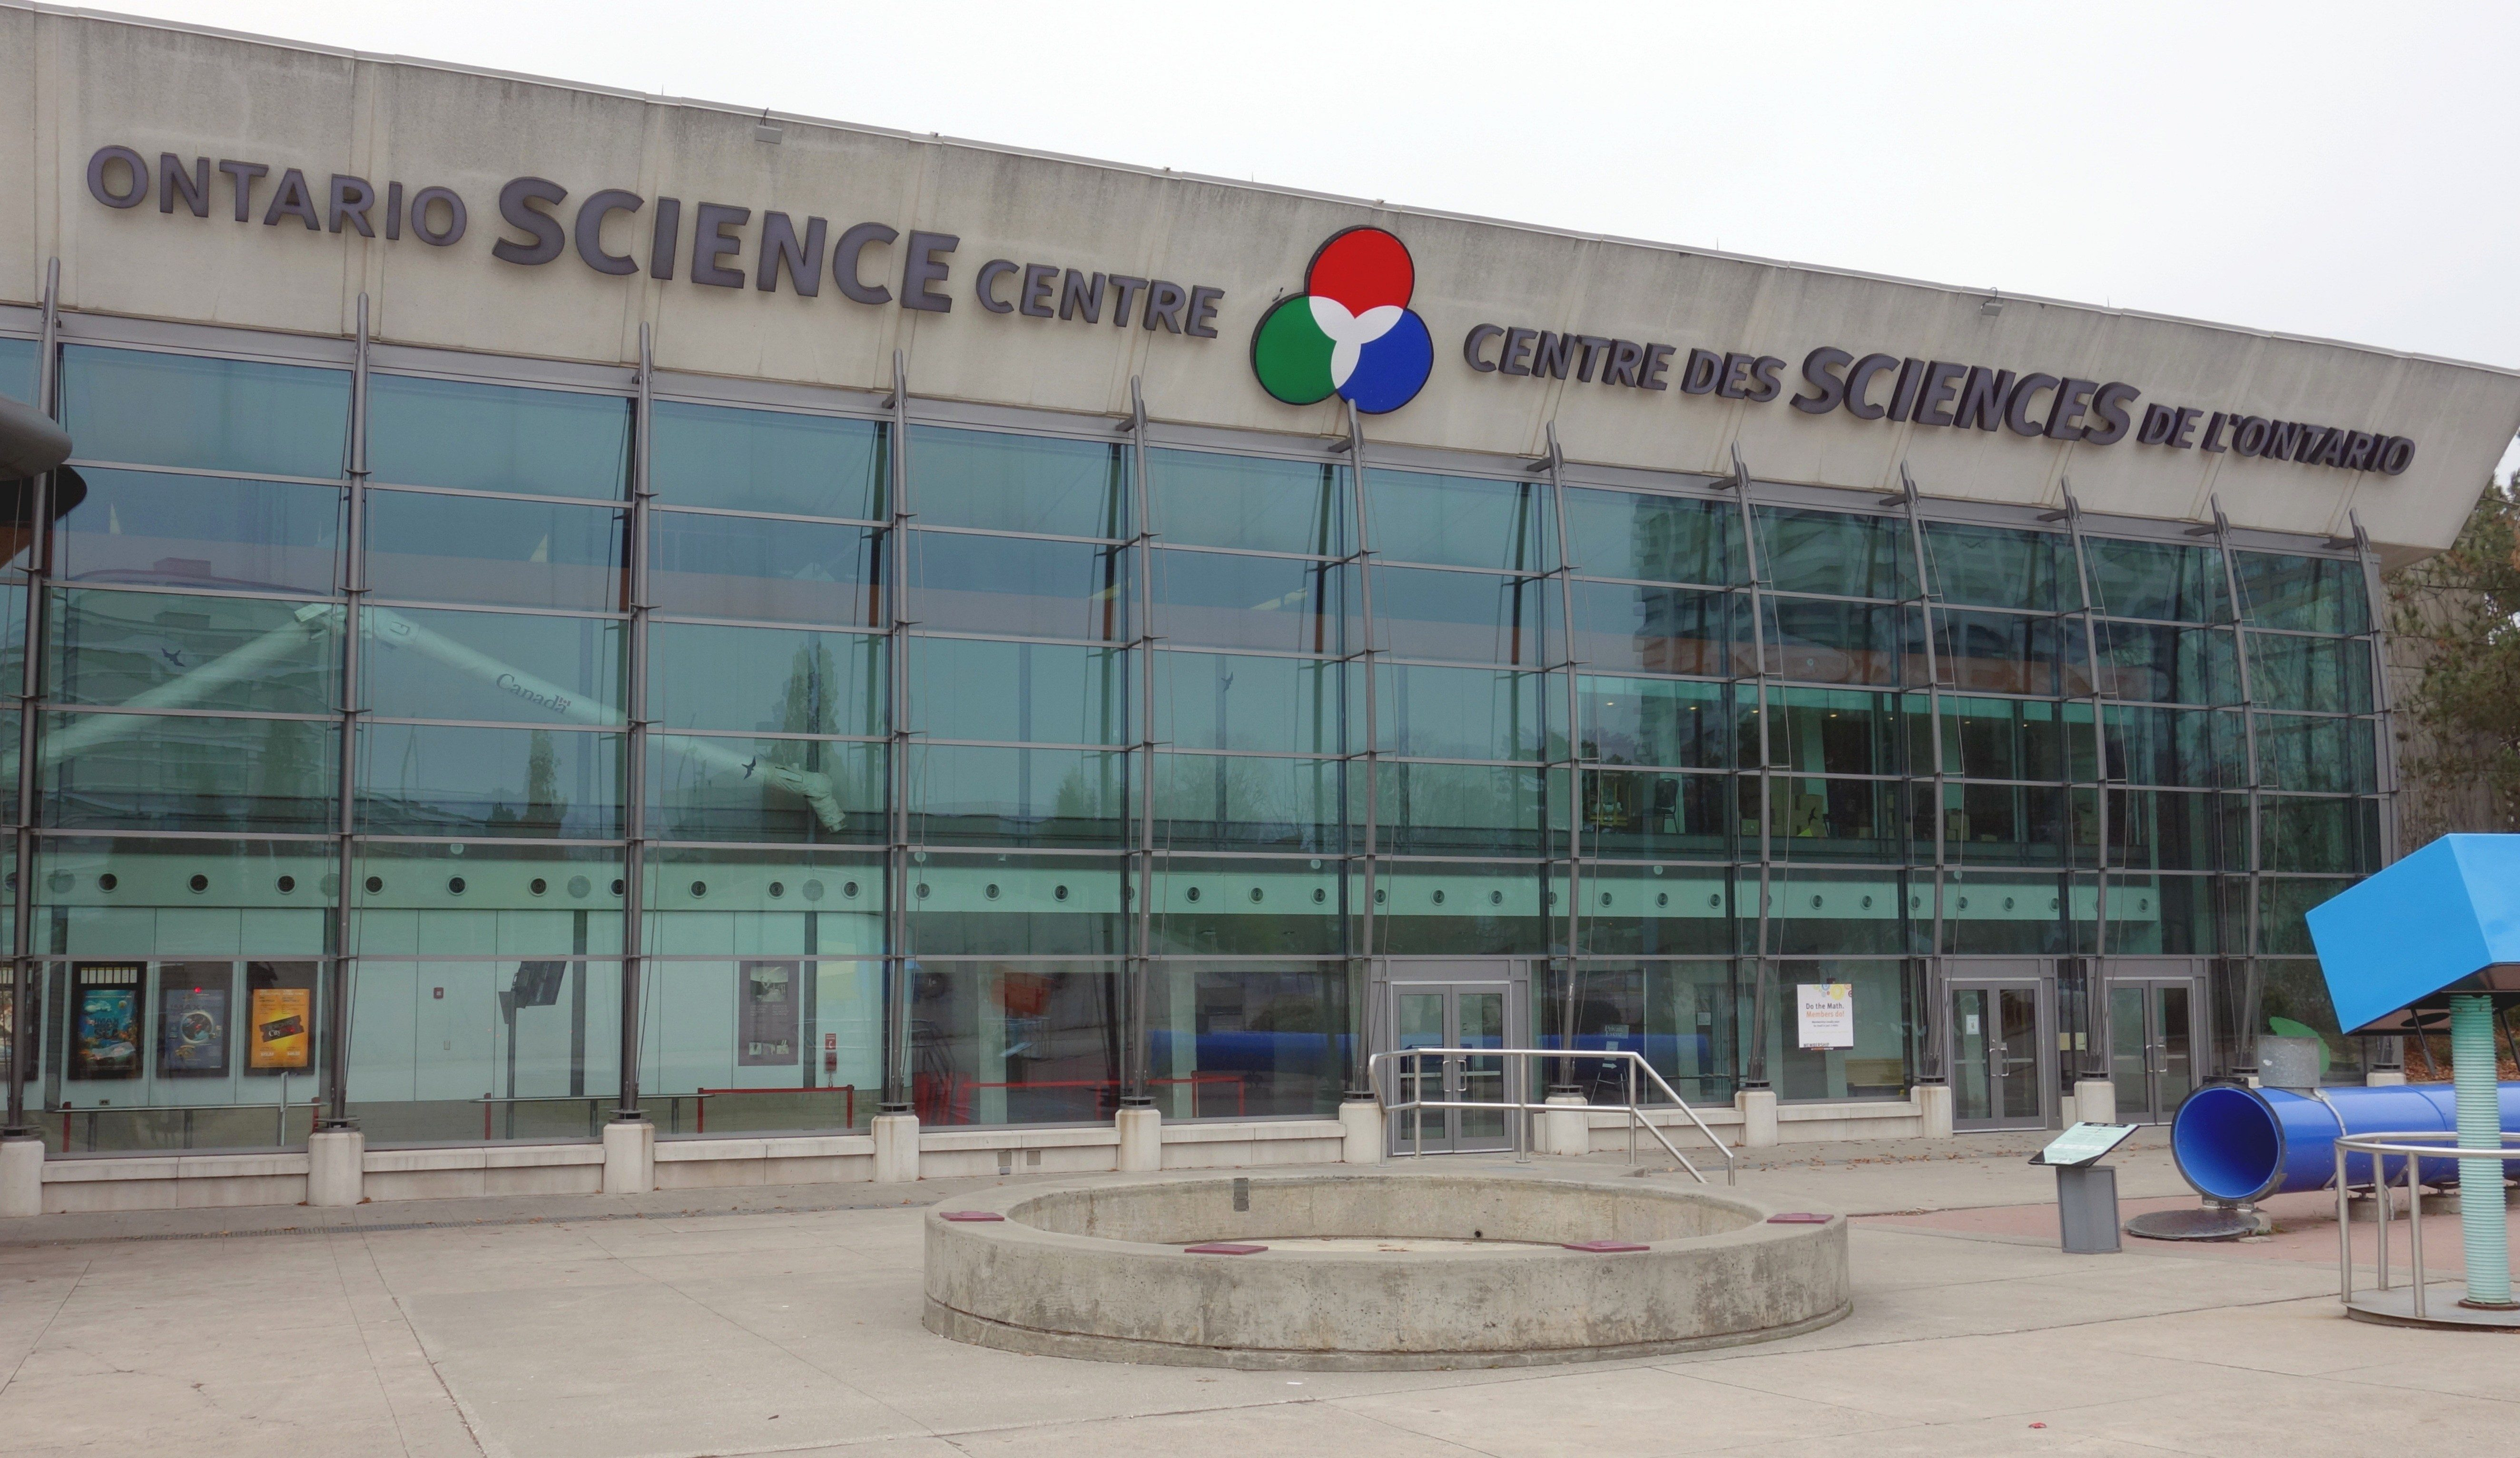 12. Le Centre des sciences de l'Ontario